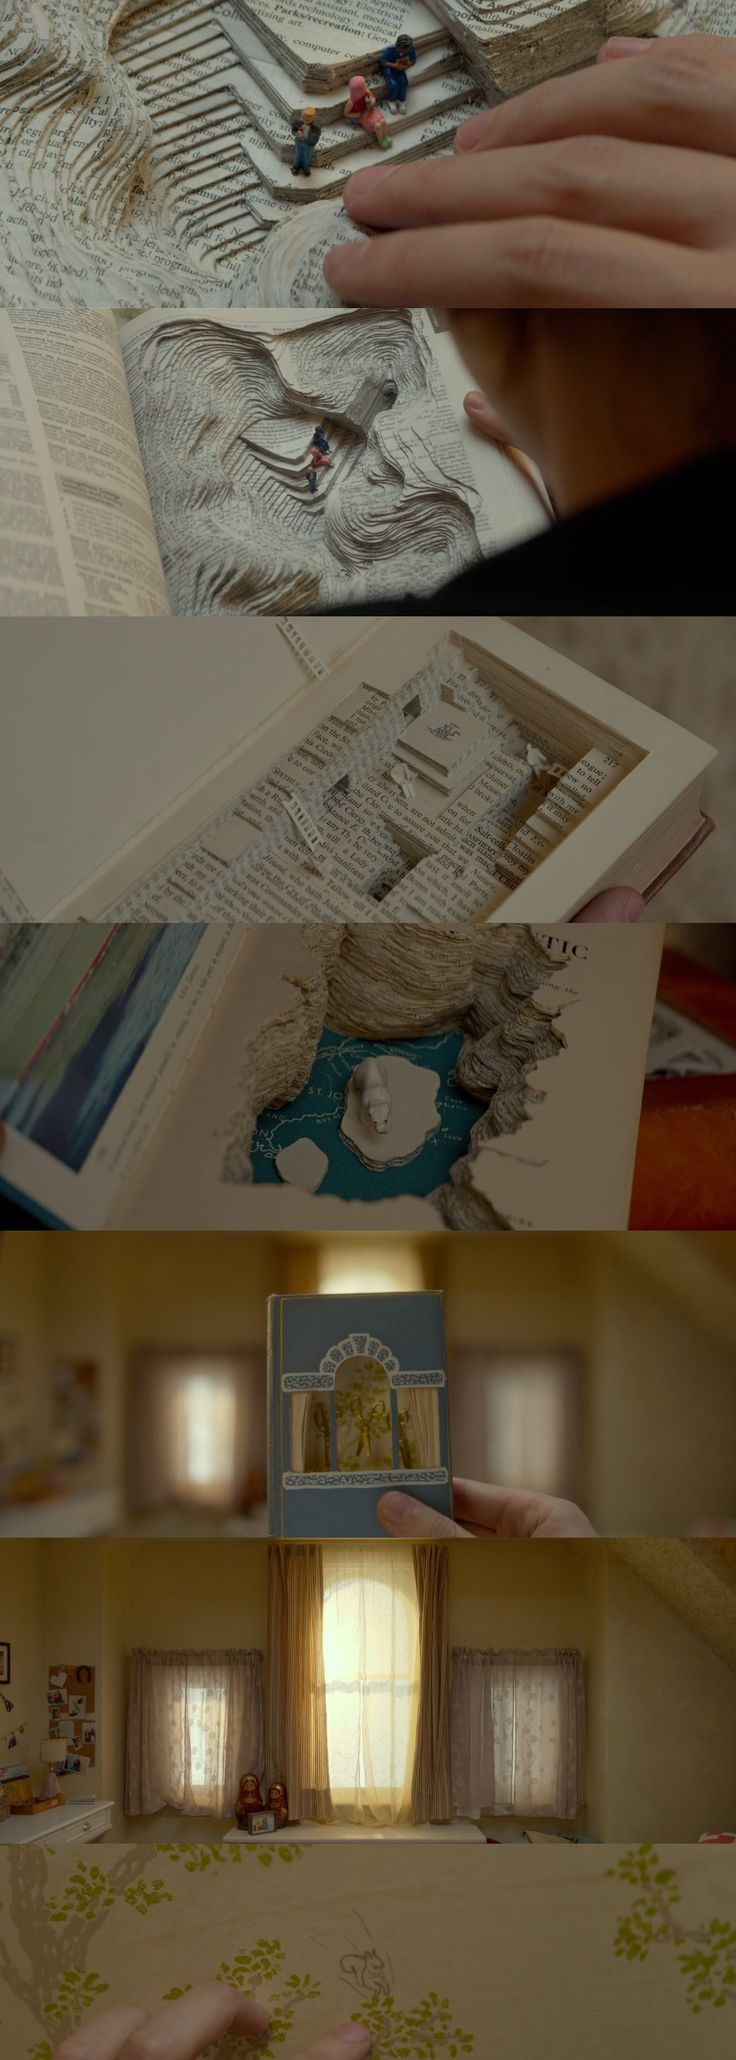 Book carvings and the wallpaper drawing from the final scene of Me and Earl and the Dying Girl by Alfonso Gomez-Rejon starring Thomas Mann and Olivia Cooke